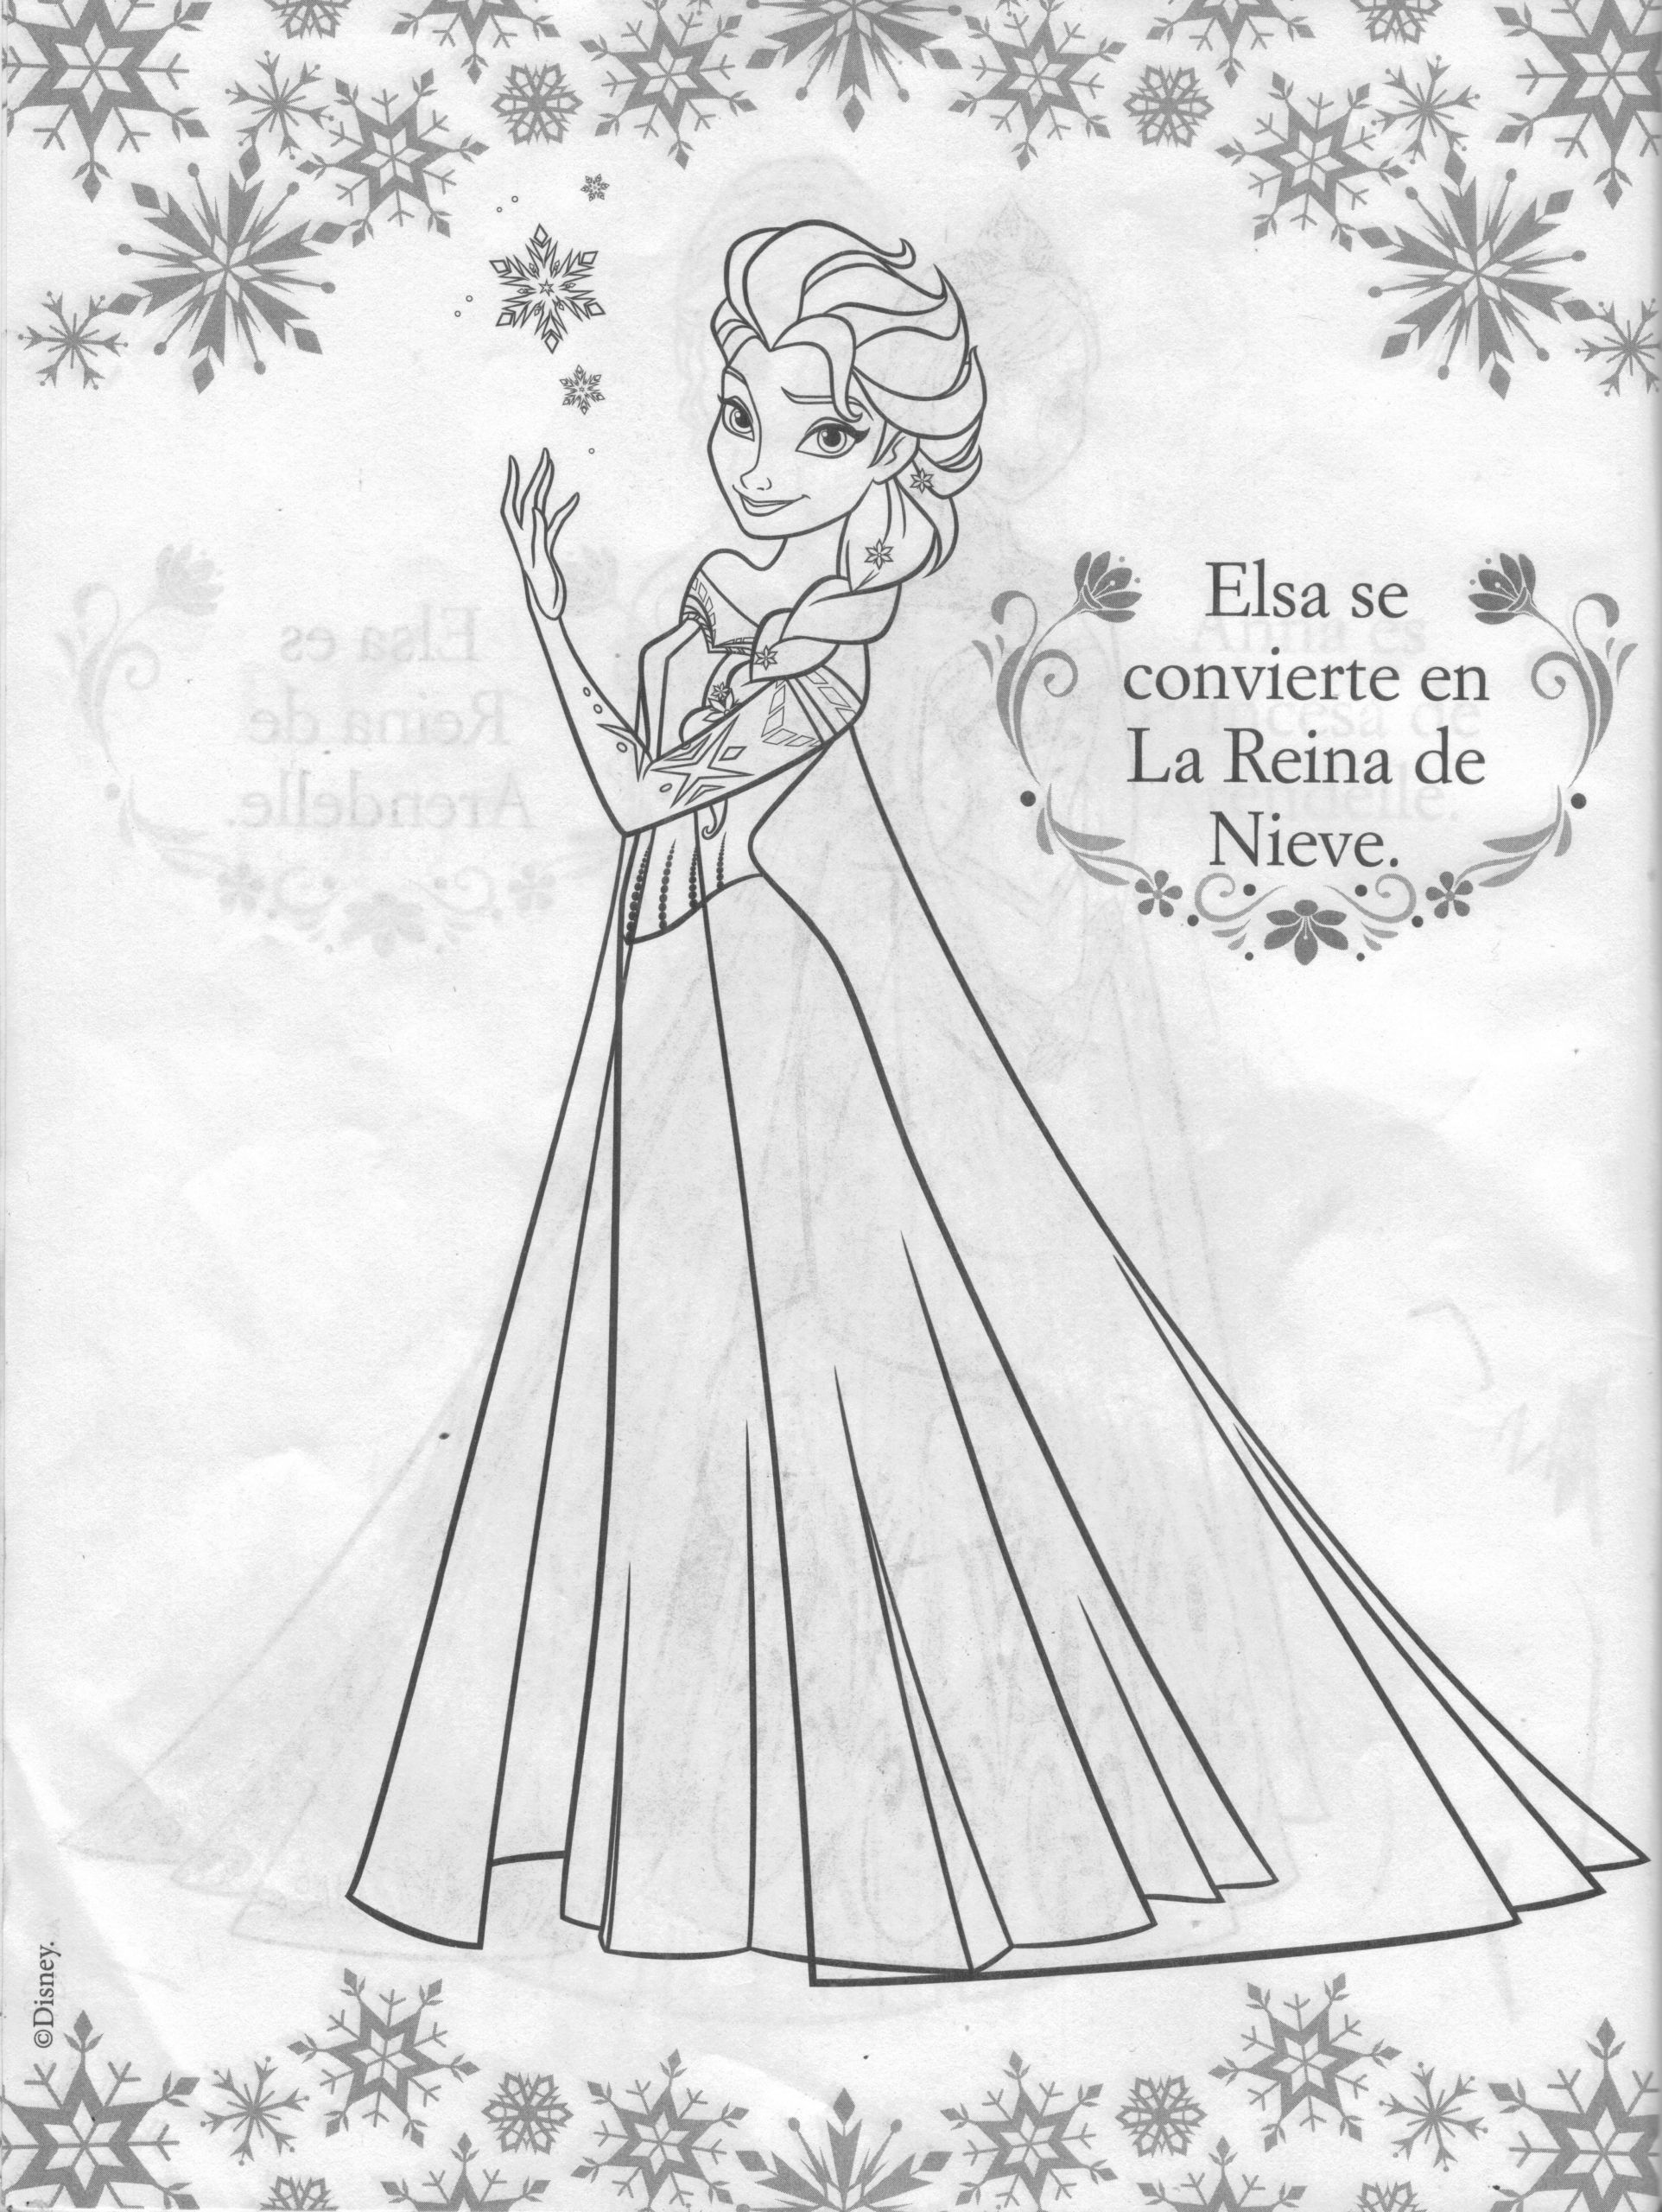 Die Besten Von Kids N Fun Coloring Page Frozen Anna And Elsa Frozen Of Ausmalbilder Elsa Kost